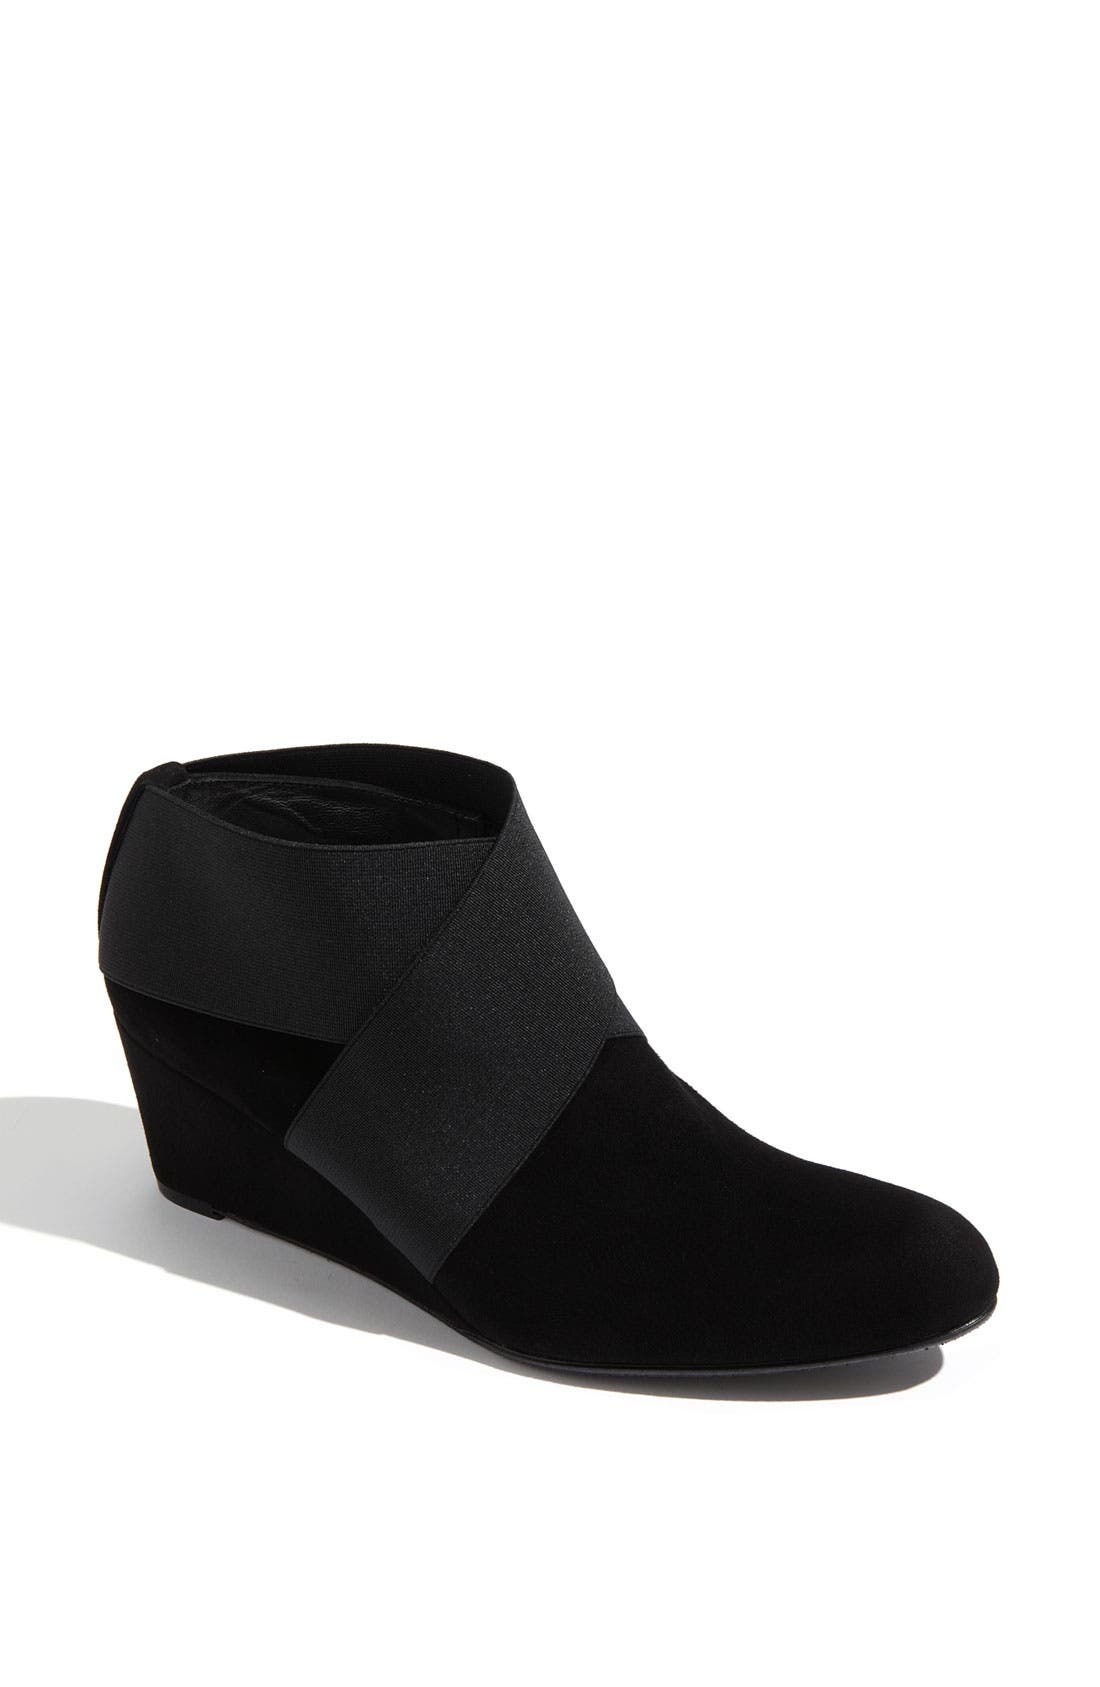 Alternate Image 1 Selected - Stuart Weitzman 'Coban' Bootie